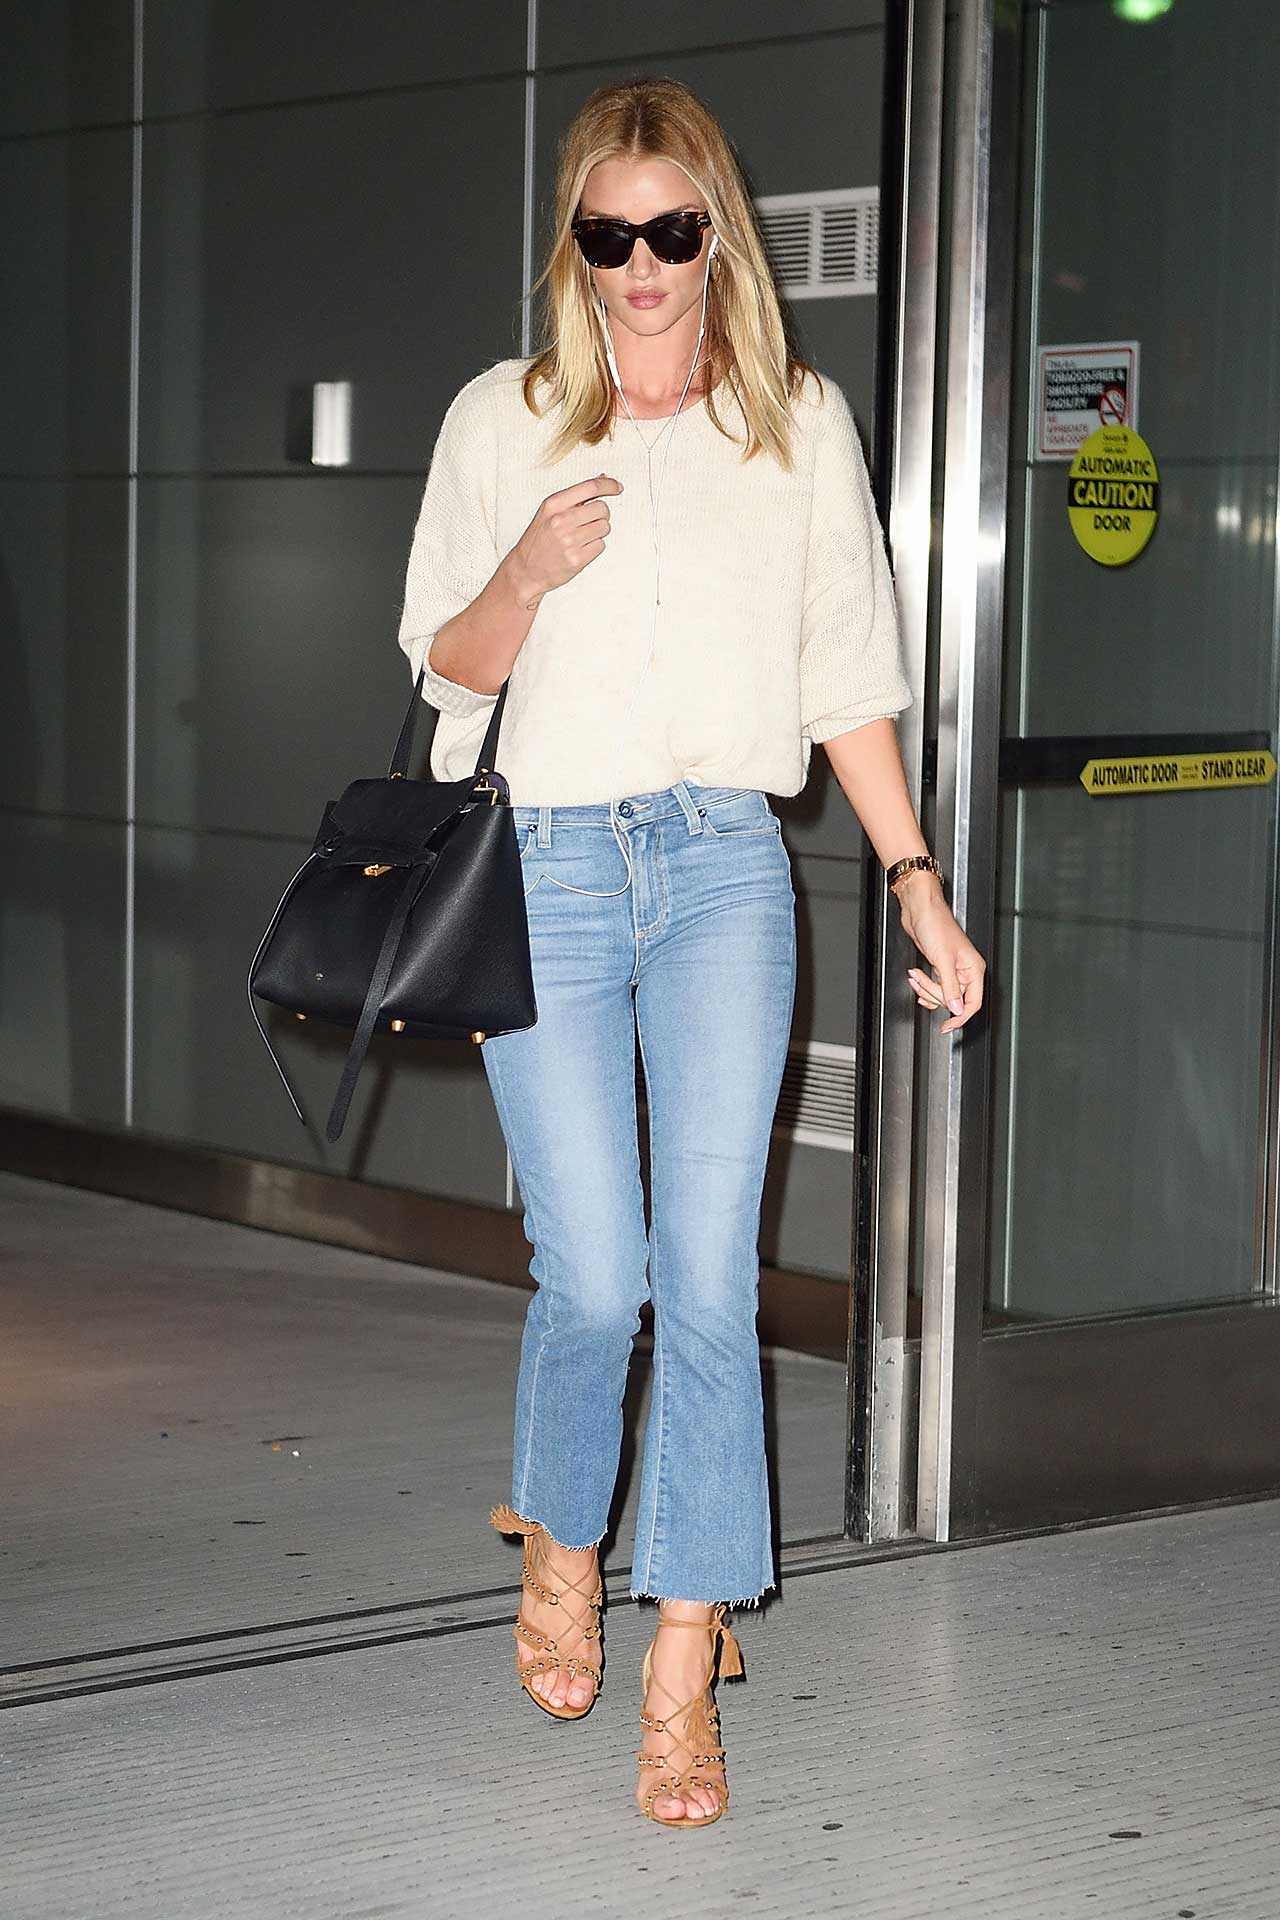 Rosie-Huntington-Whiteley-PAIGE-Colette-Cropped-Flare-Jeans